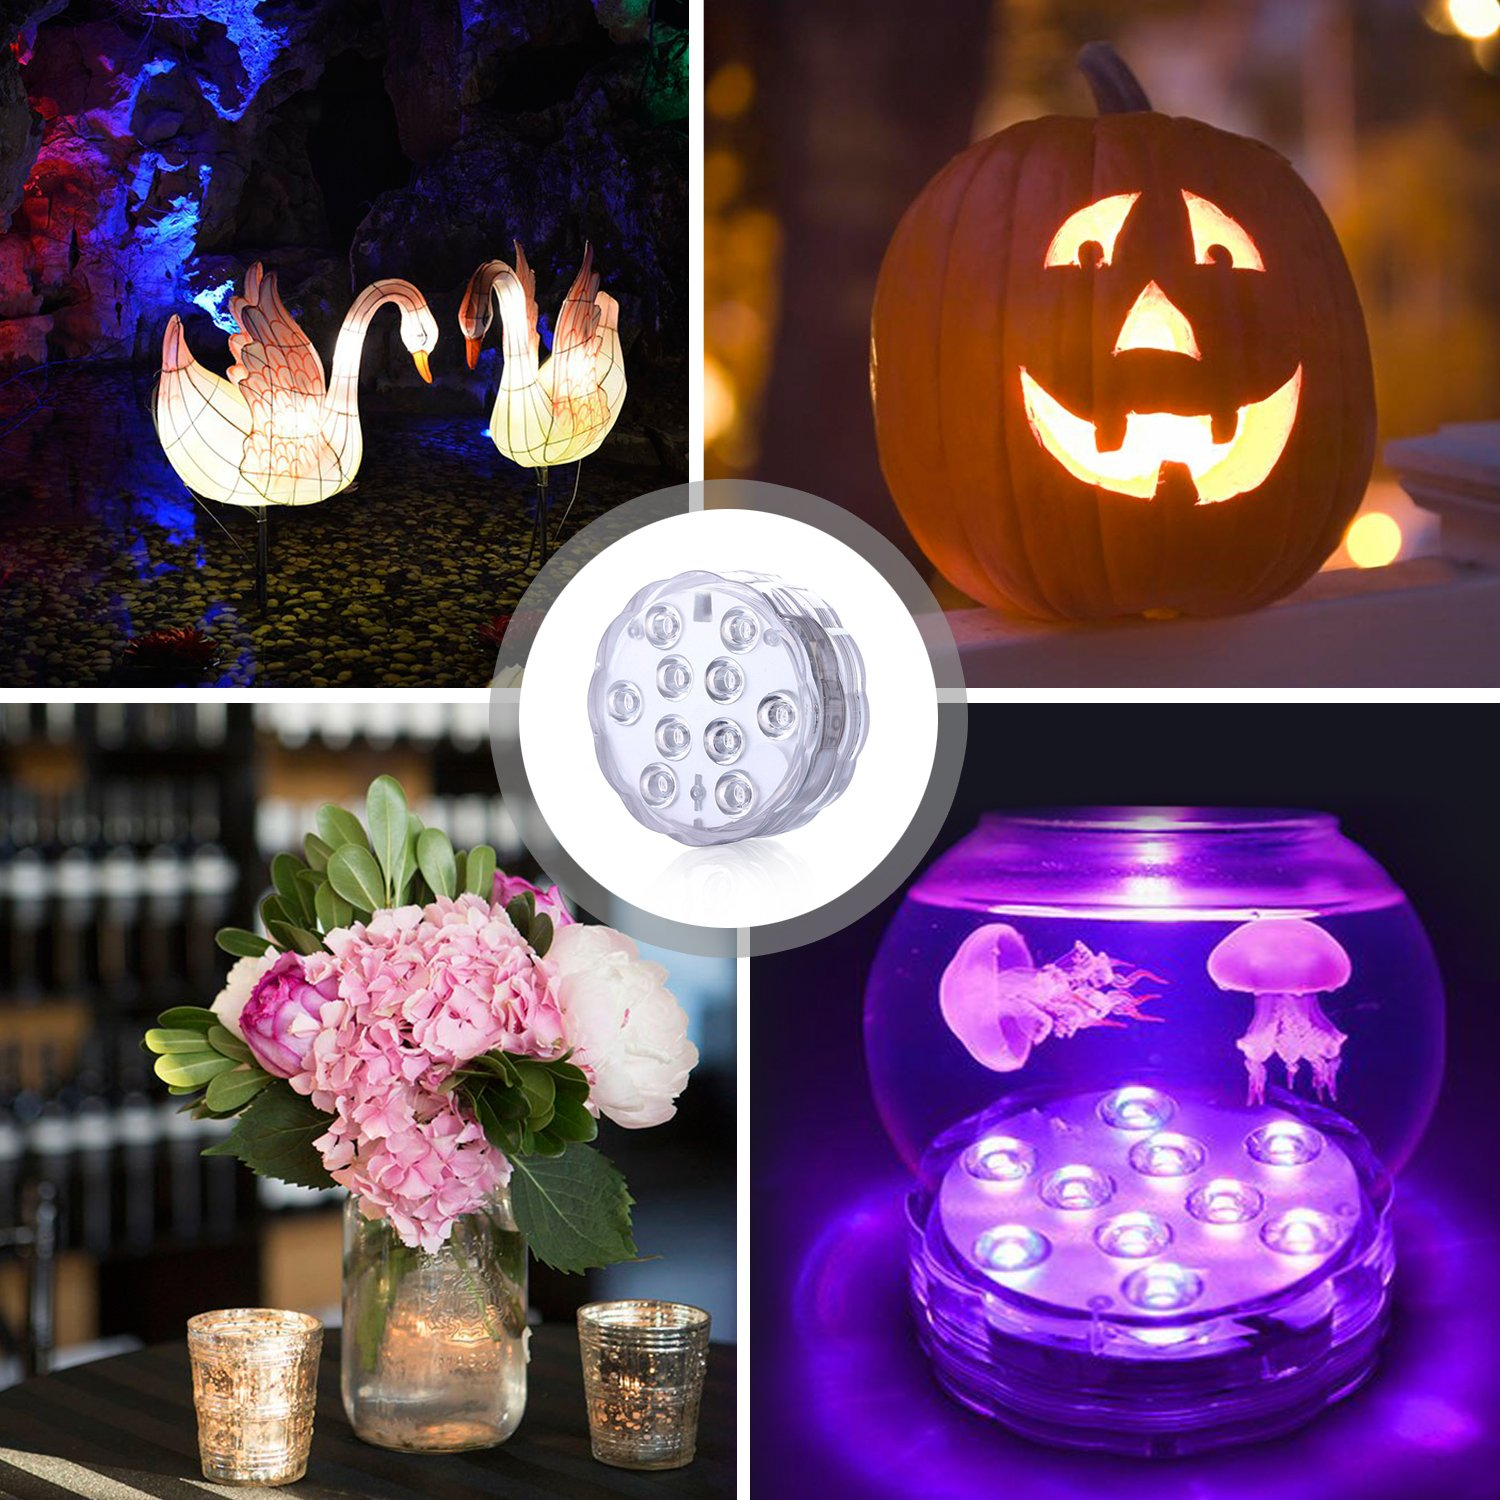 2 Pack Pond UBEGOOD Submersible LED Lights with Remote Waterproof Underwater Led Lights Party Decoration Light for Aquarium Garden Wedding Pool Battery Operated Base Vase Hot Tub